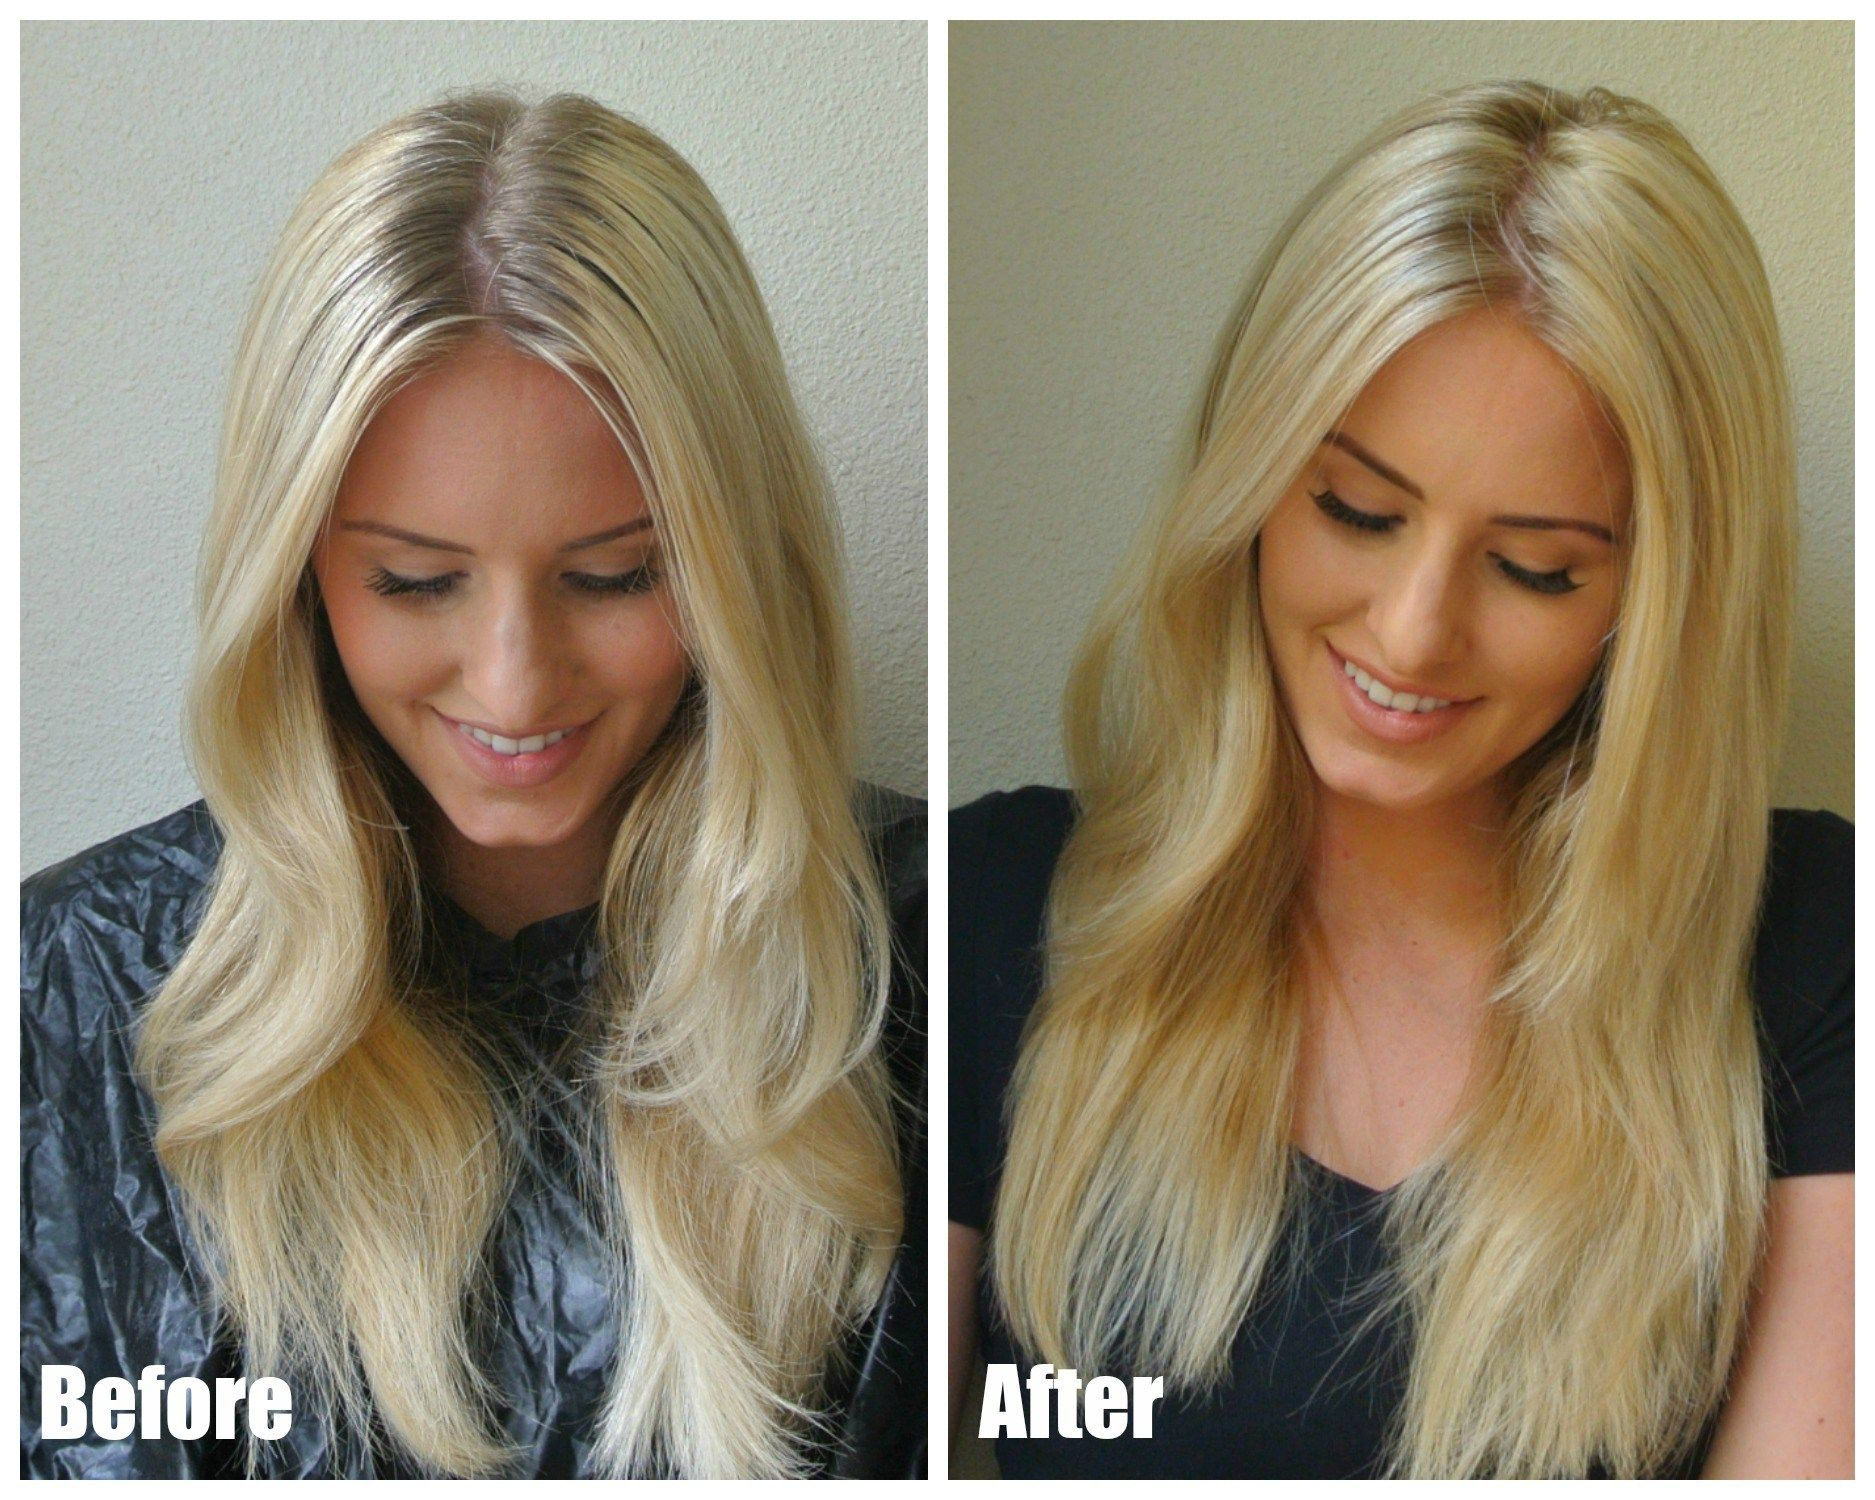 Refashioninghair Highlighting Hair At Home Page 2 Of 3